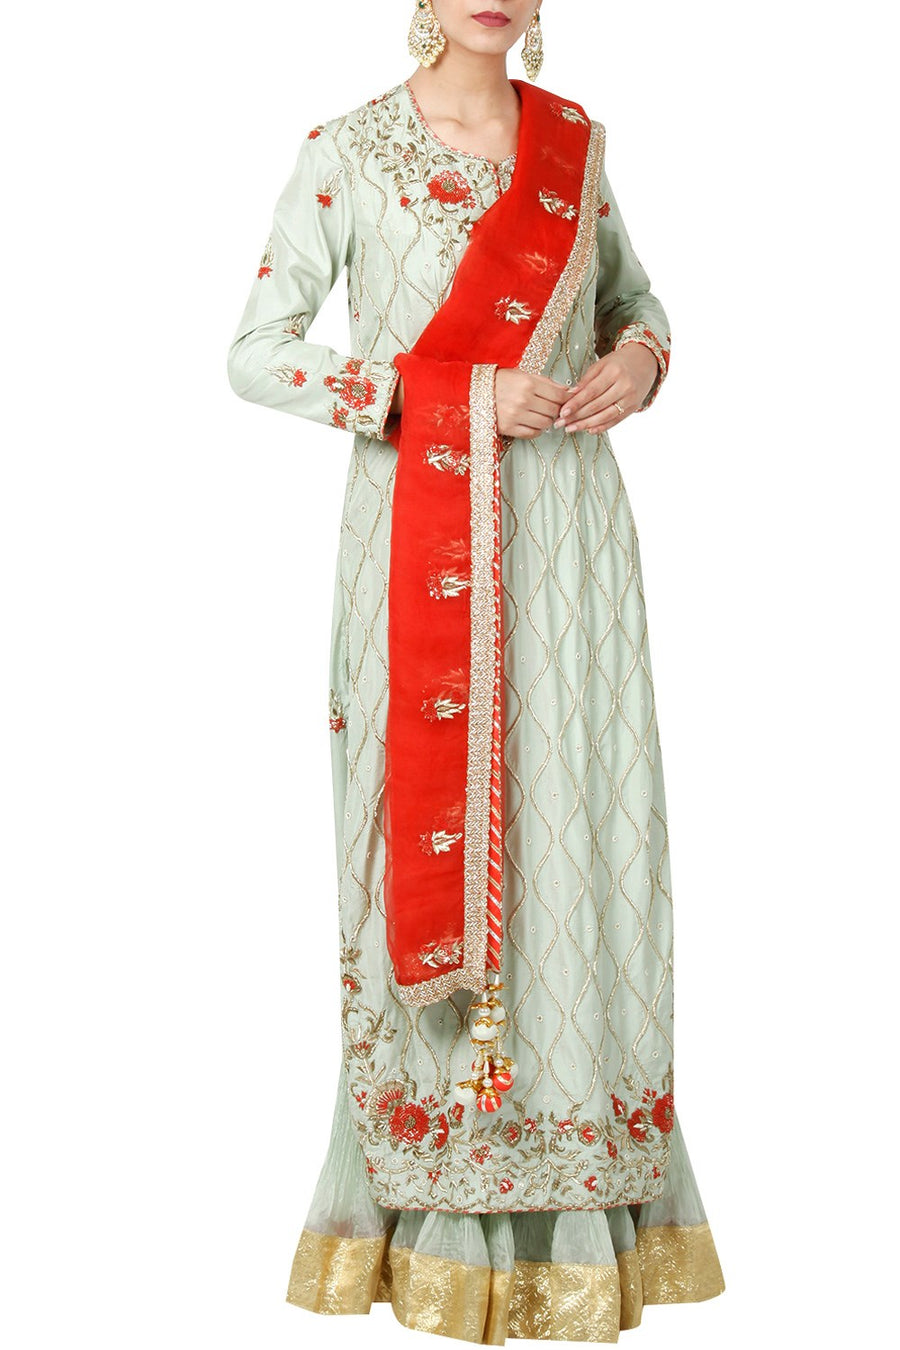 Mint Zardosi Kurta With Lehenga And Dupatta – Priyanka Singh